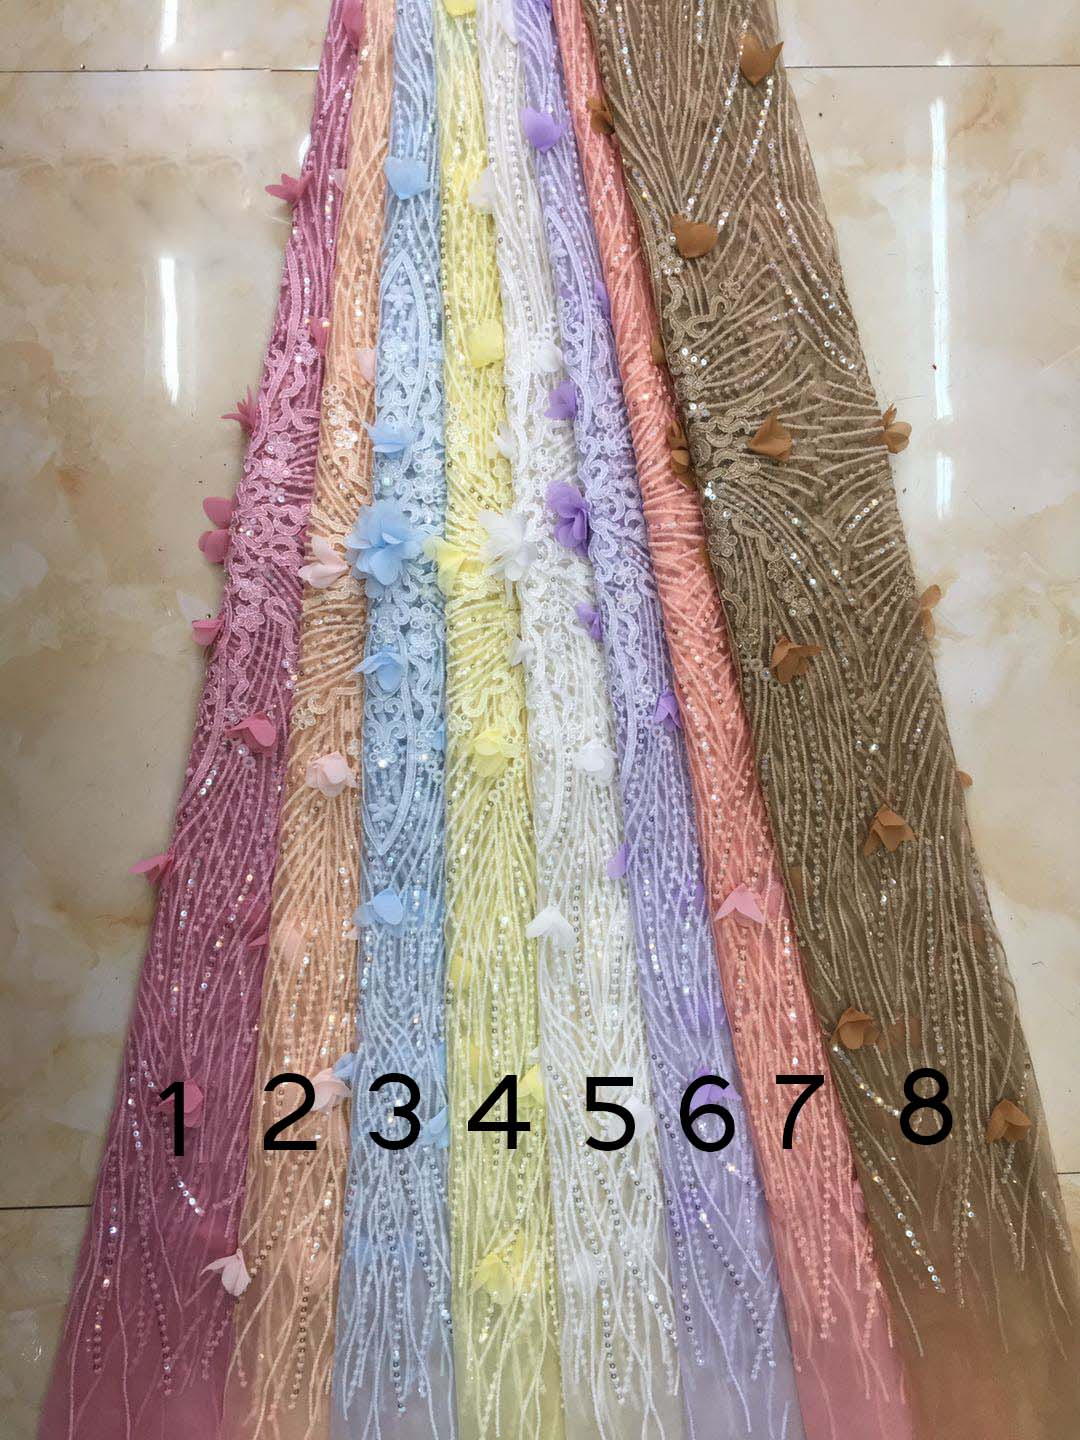 2019 New style French net lace fabric 3D flower African tulle mesh lace fabric high quality african lace fabric DYS118 in Lace from Home Garden